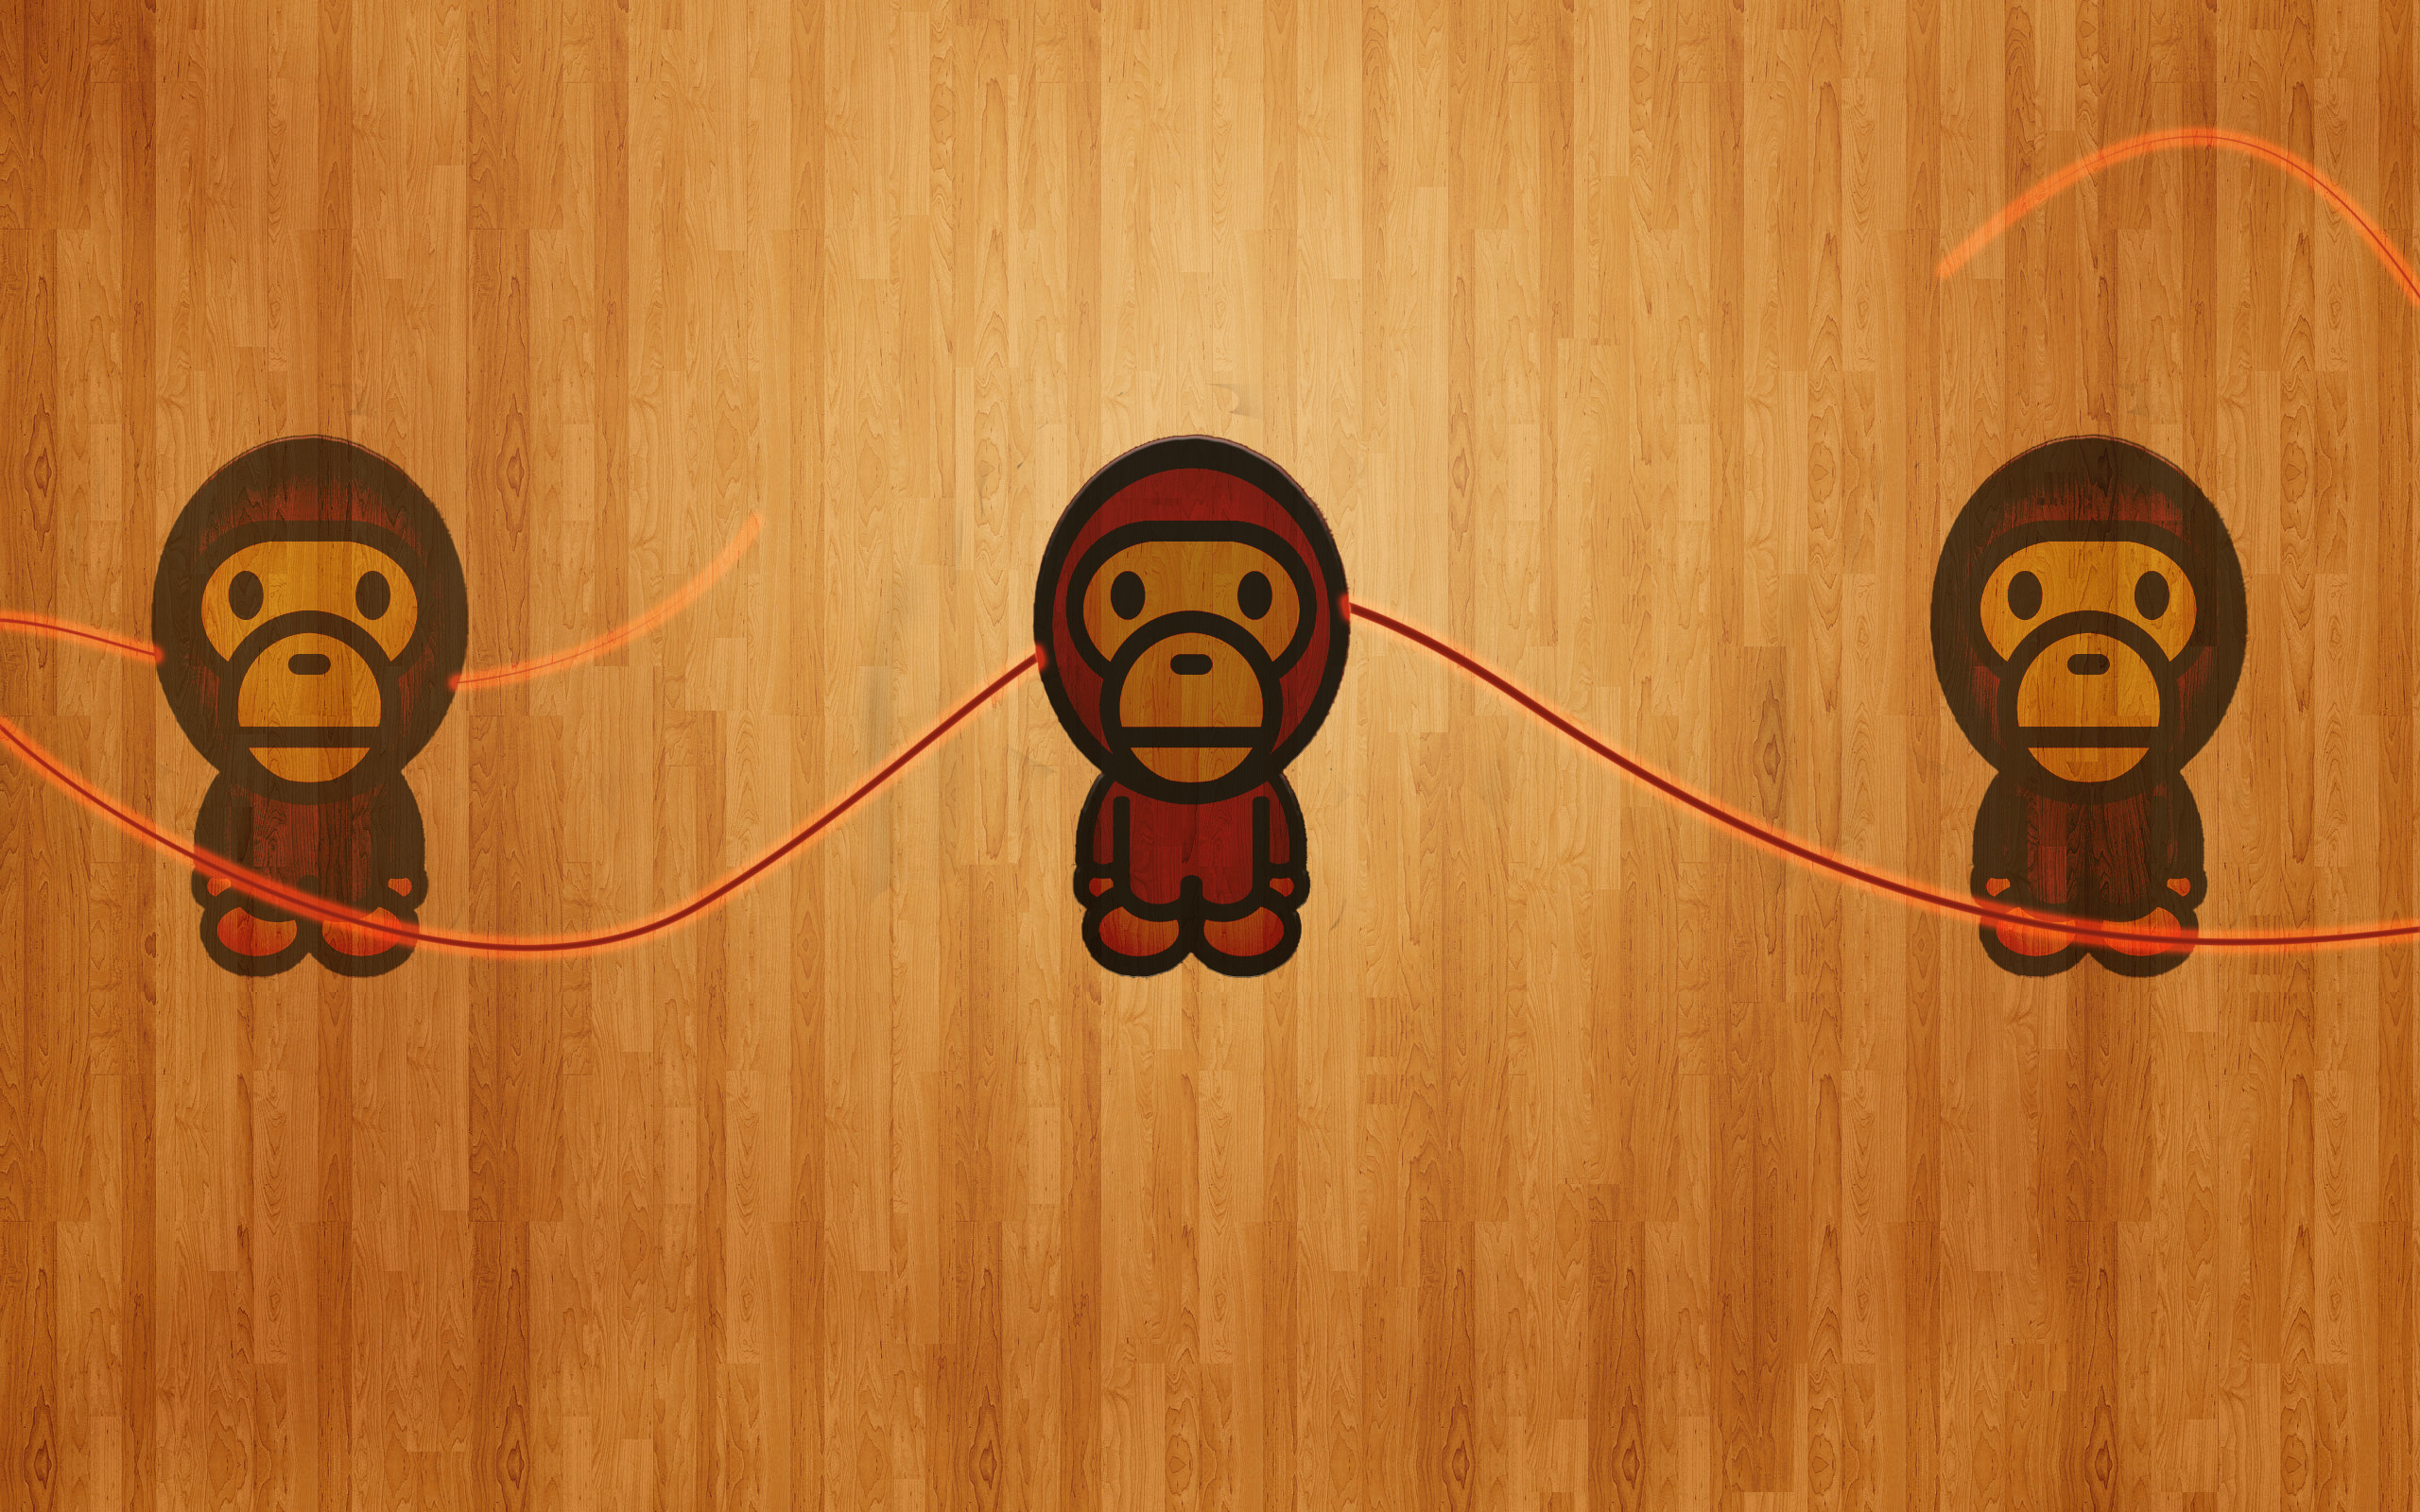 Res: 2560x1600, Bape Wallpaper by SamsungRv515 on DeviantArt